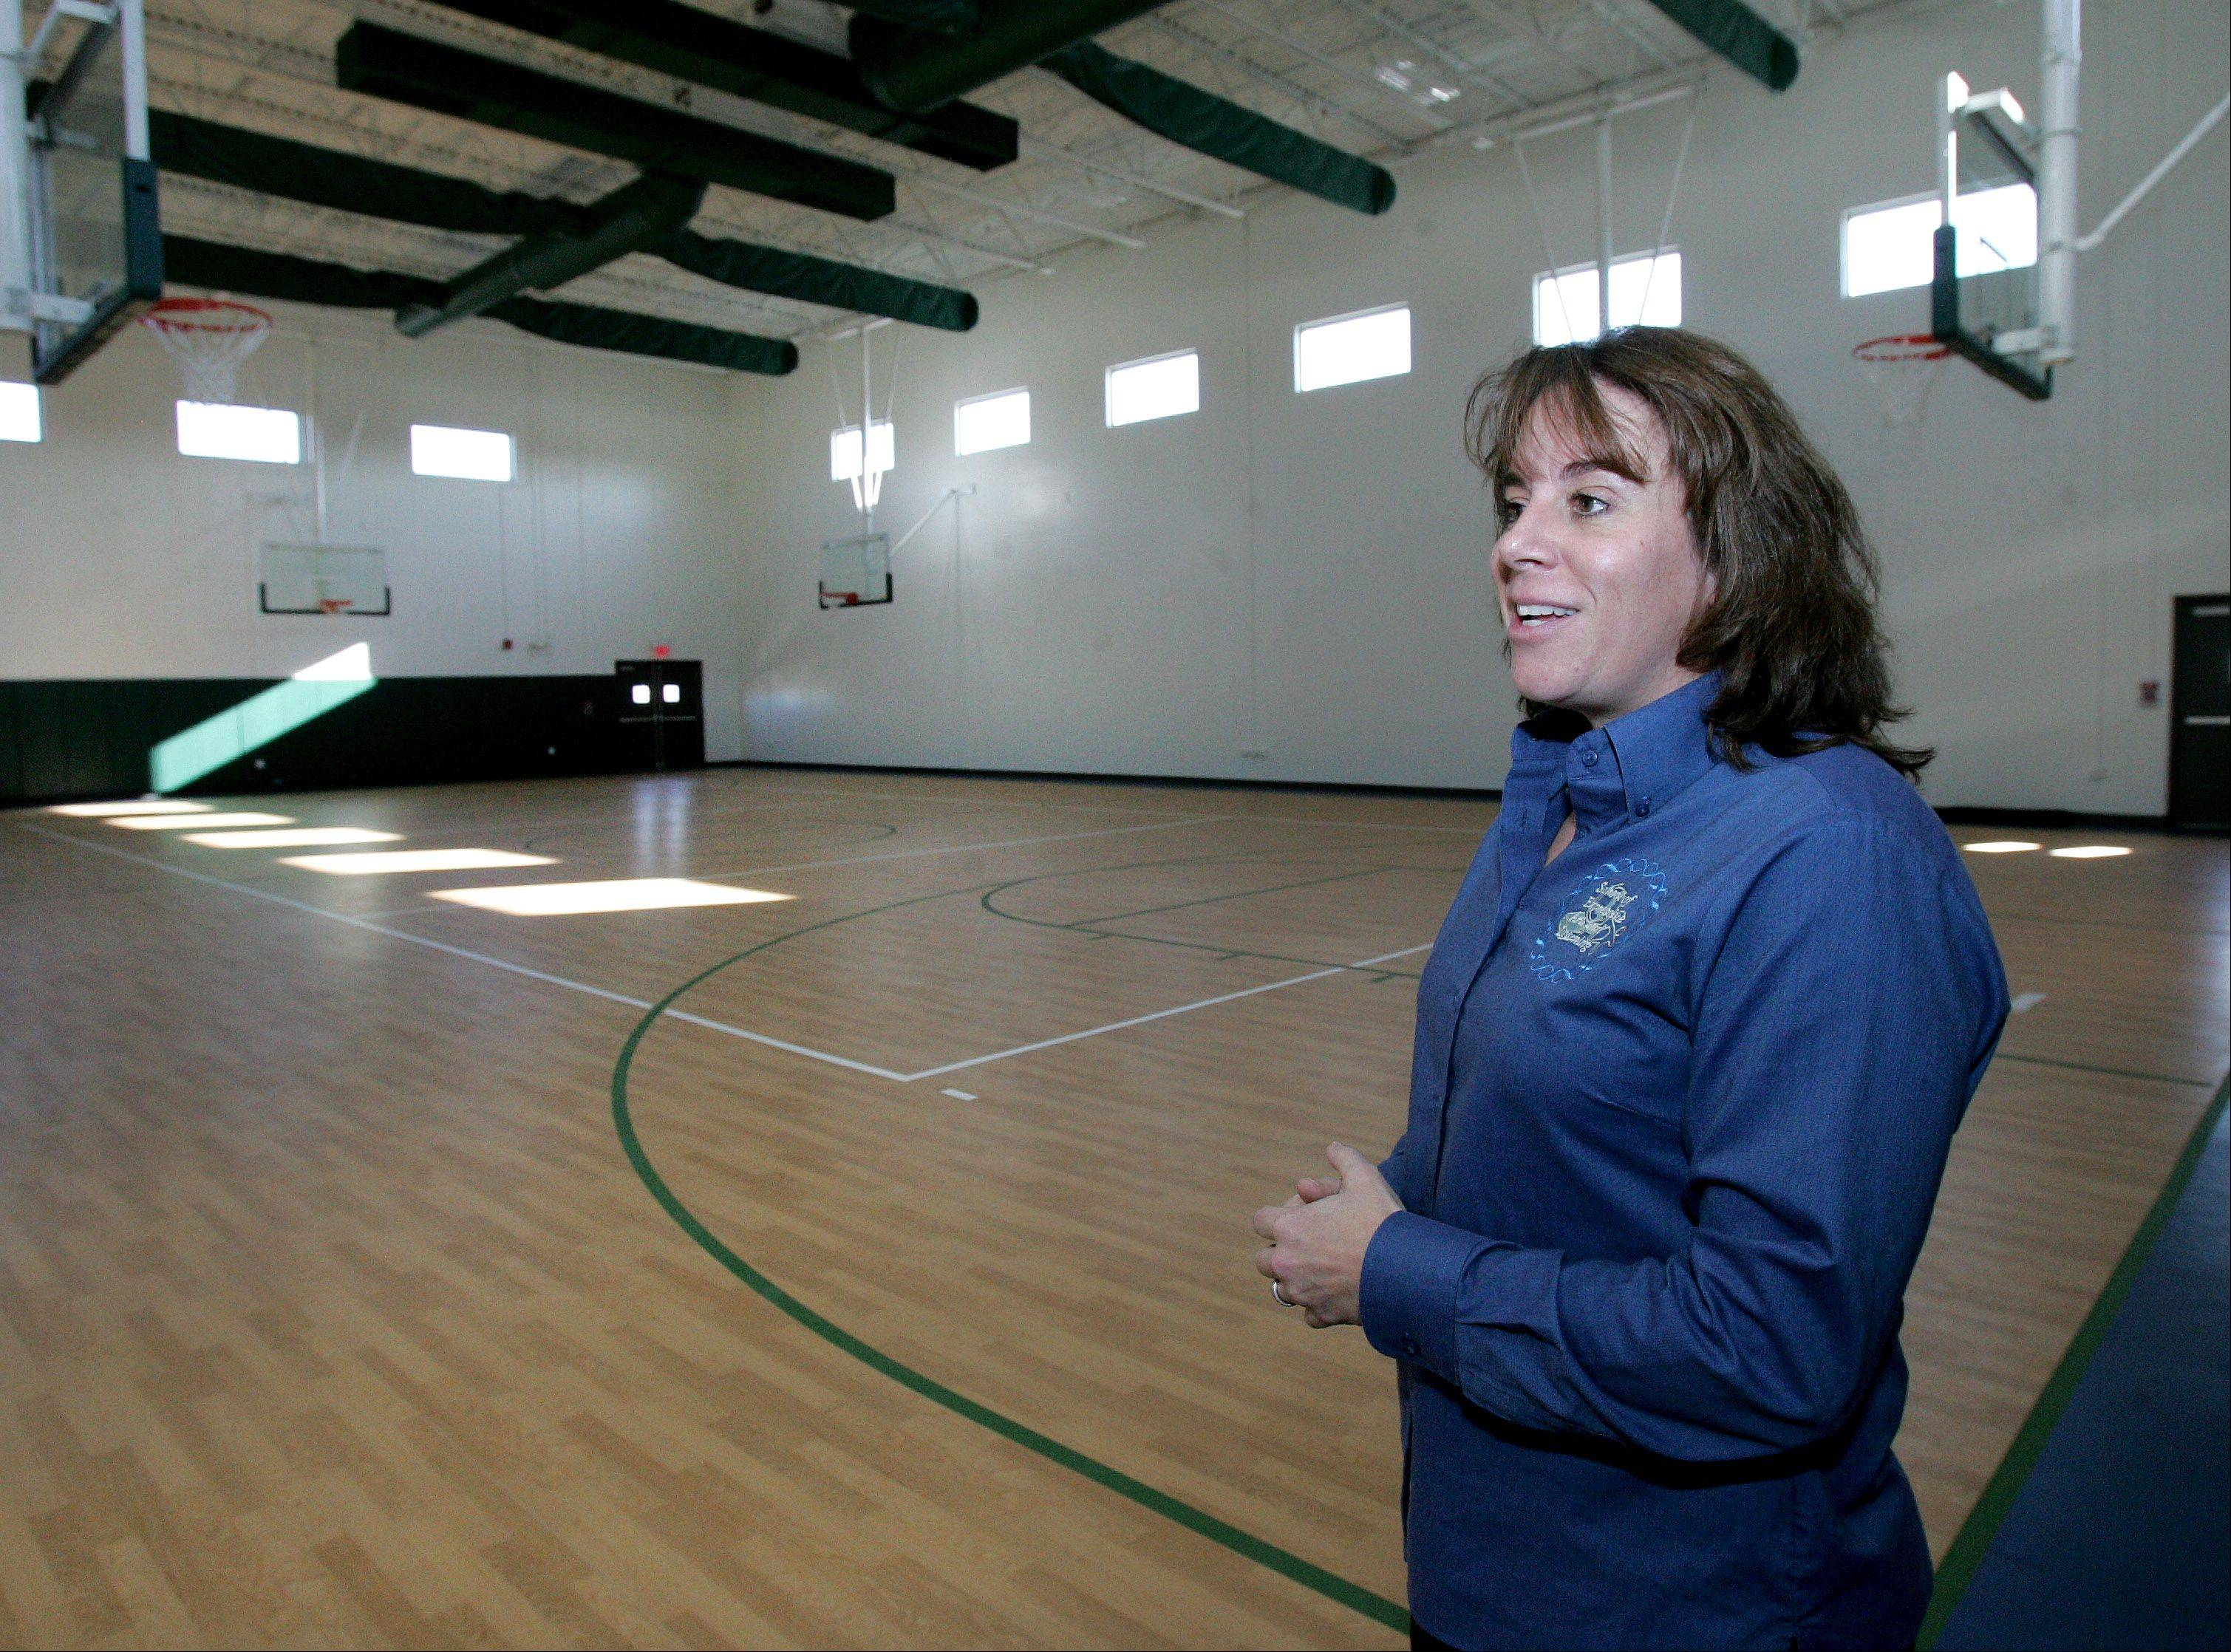 Karen Larson, co-founder of the School of Expressive Arts and Learning, shows off the regulation-sized gymnasium at the school's new $5.5 million home in Lombard.